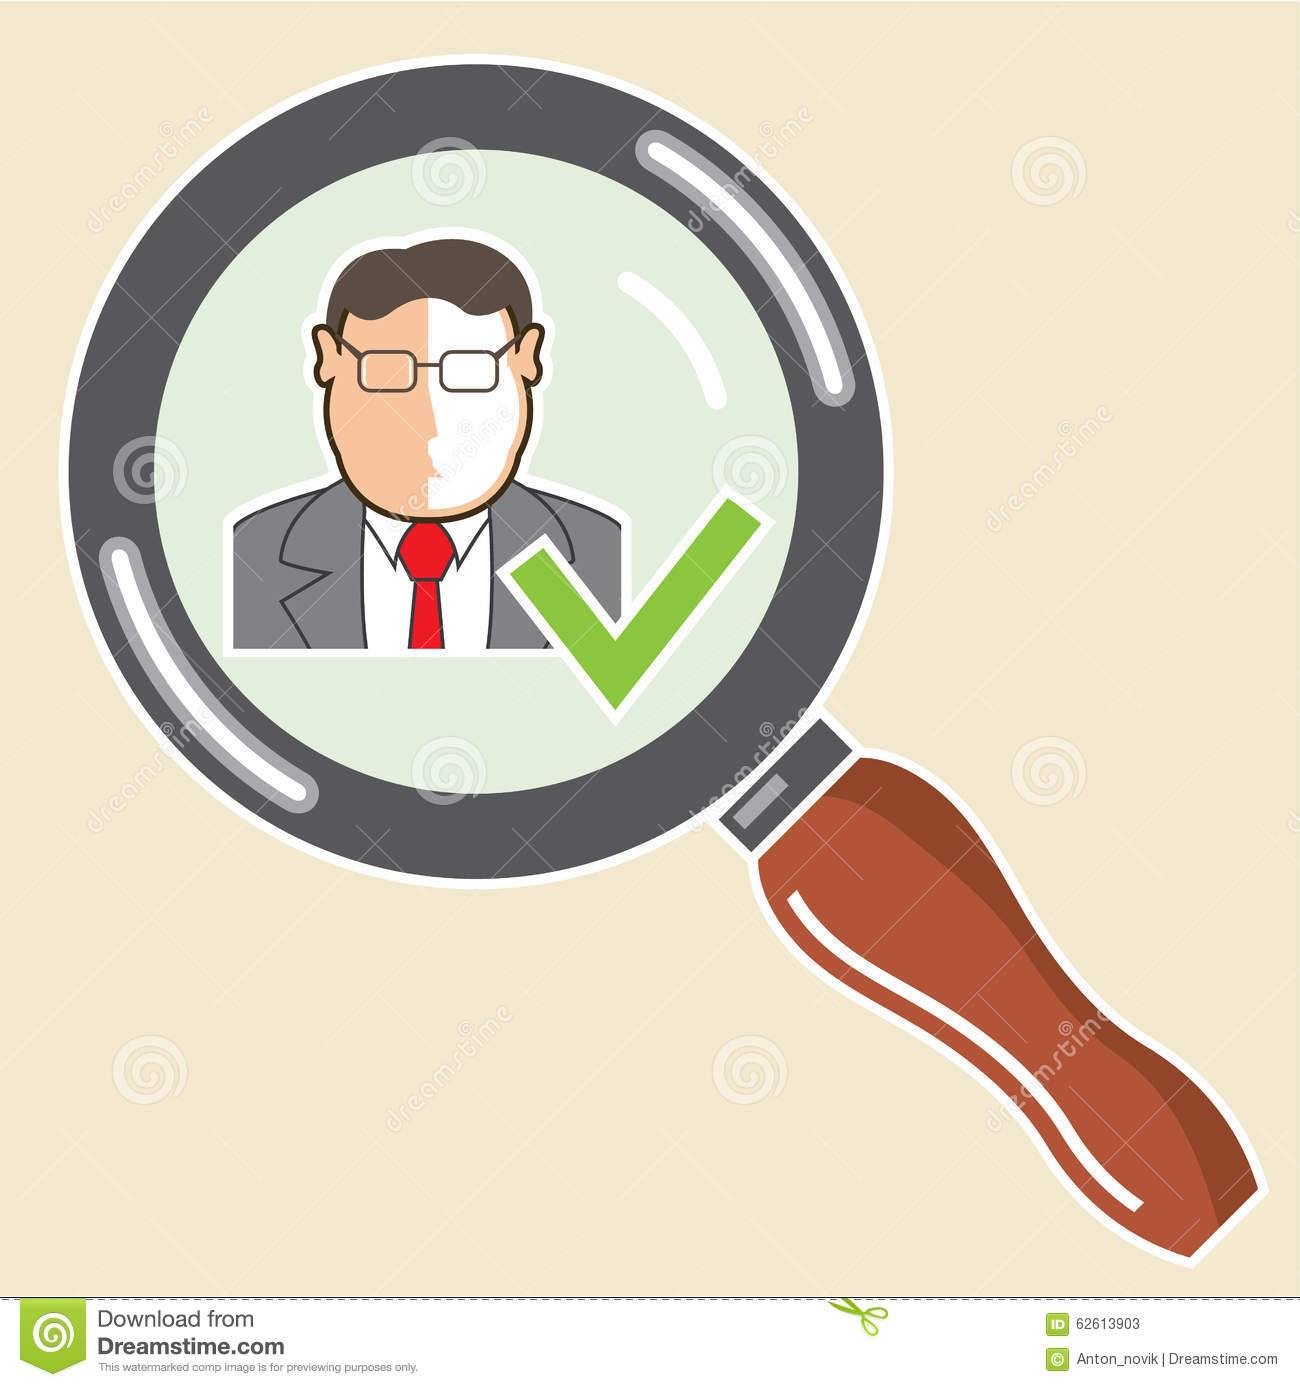 bad and good employee practice business concept stock vector good employee background check ok vector zoom stock photos